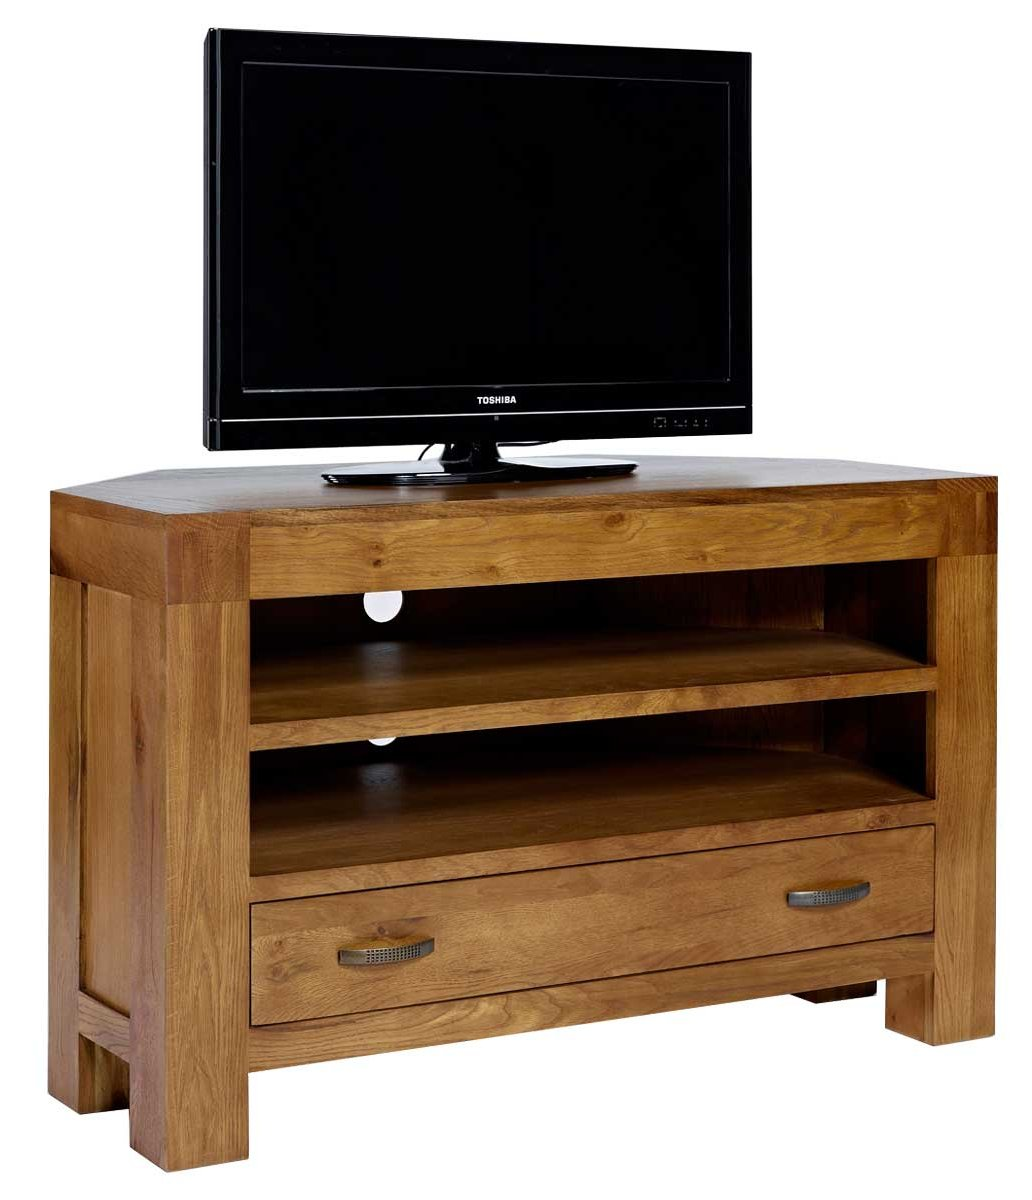 rustic grange santana rustic oak corner tv stand. Black Bedroom Furniture Sets. Home Design Ideas